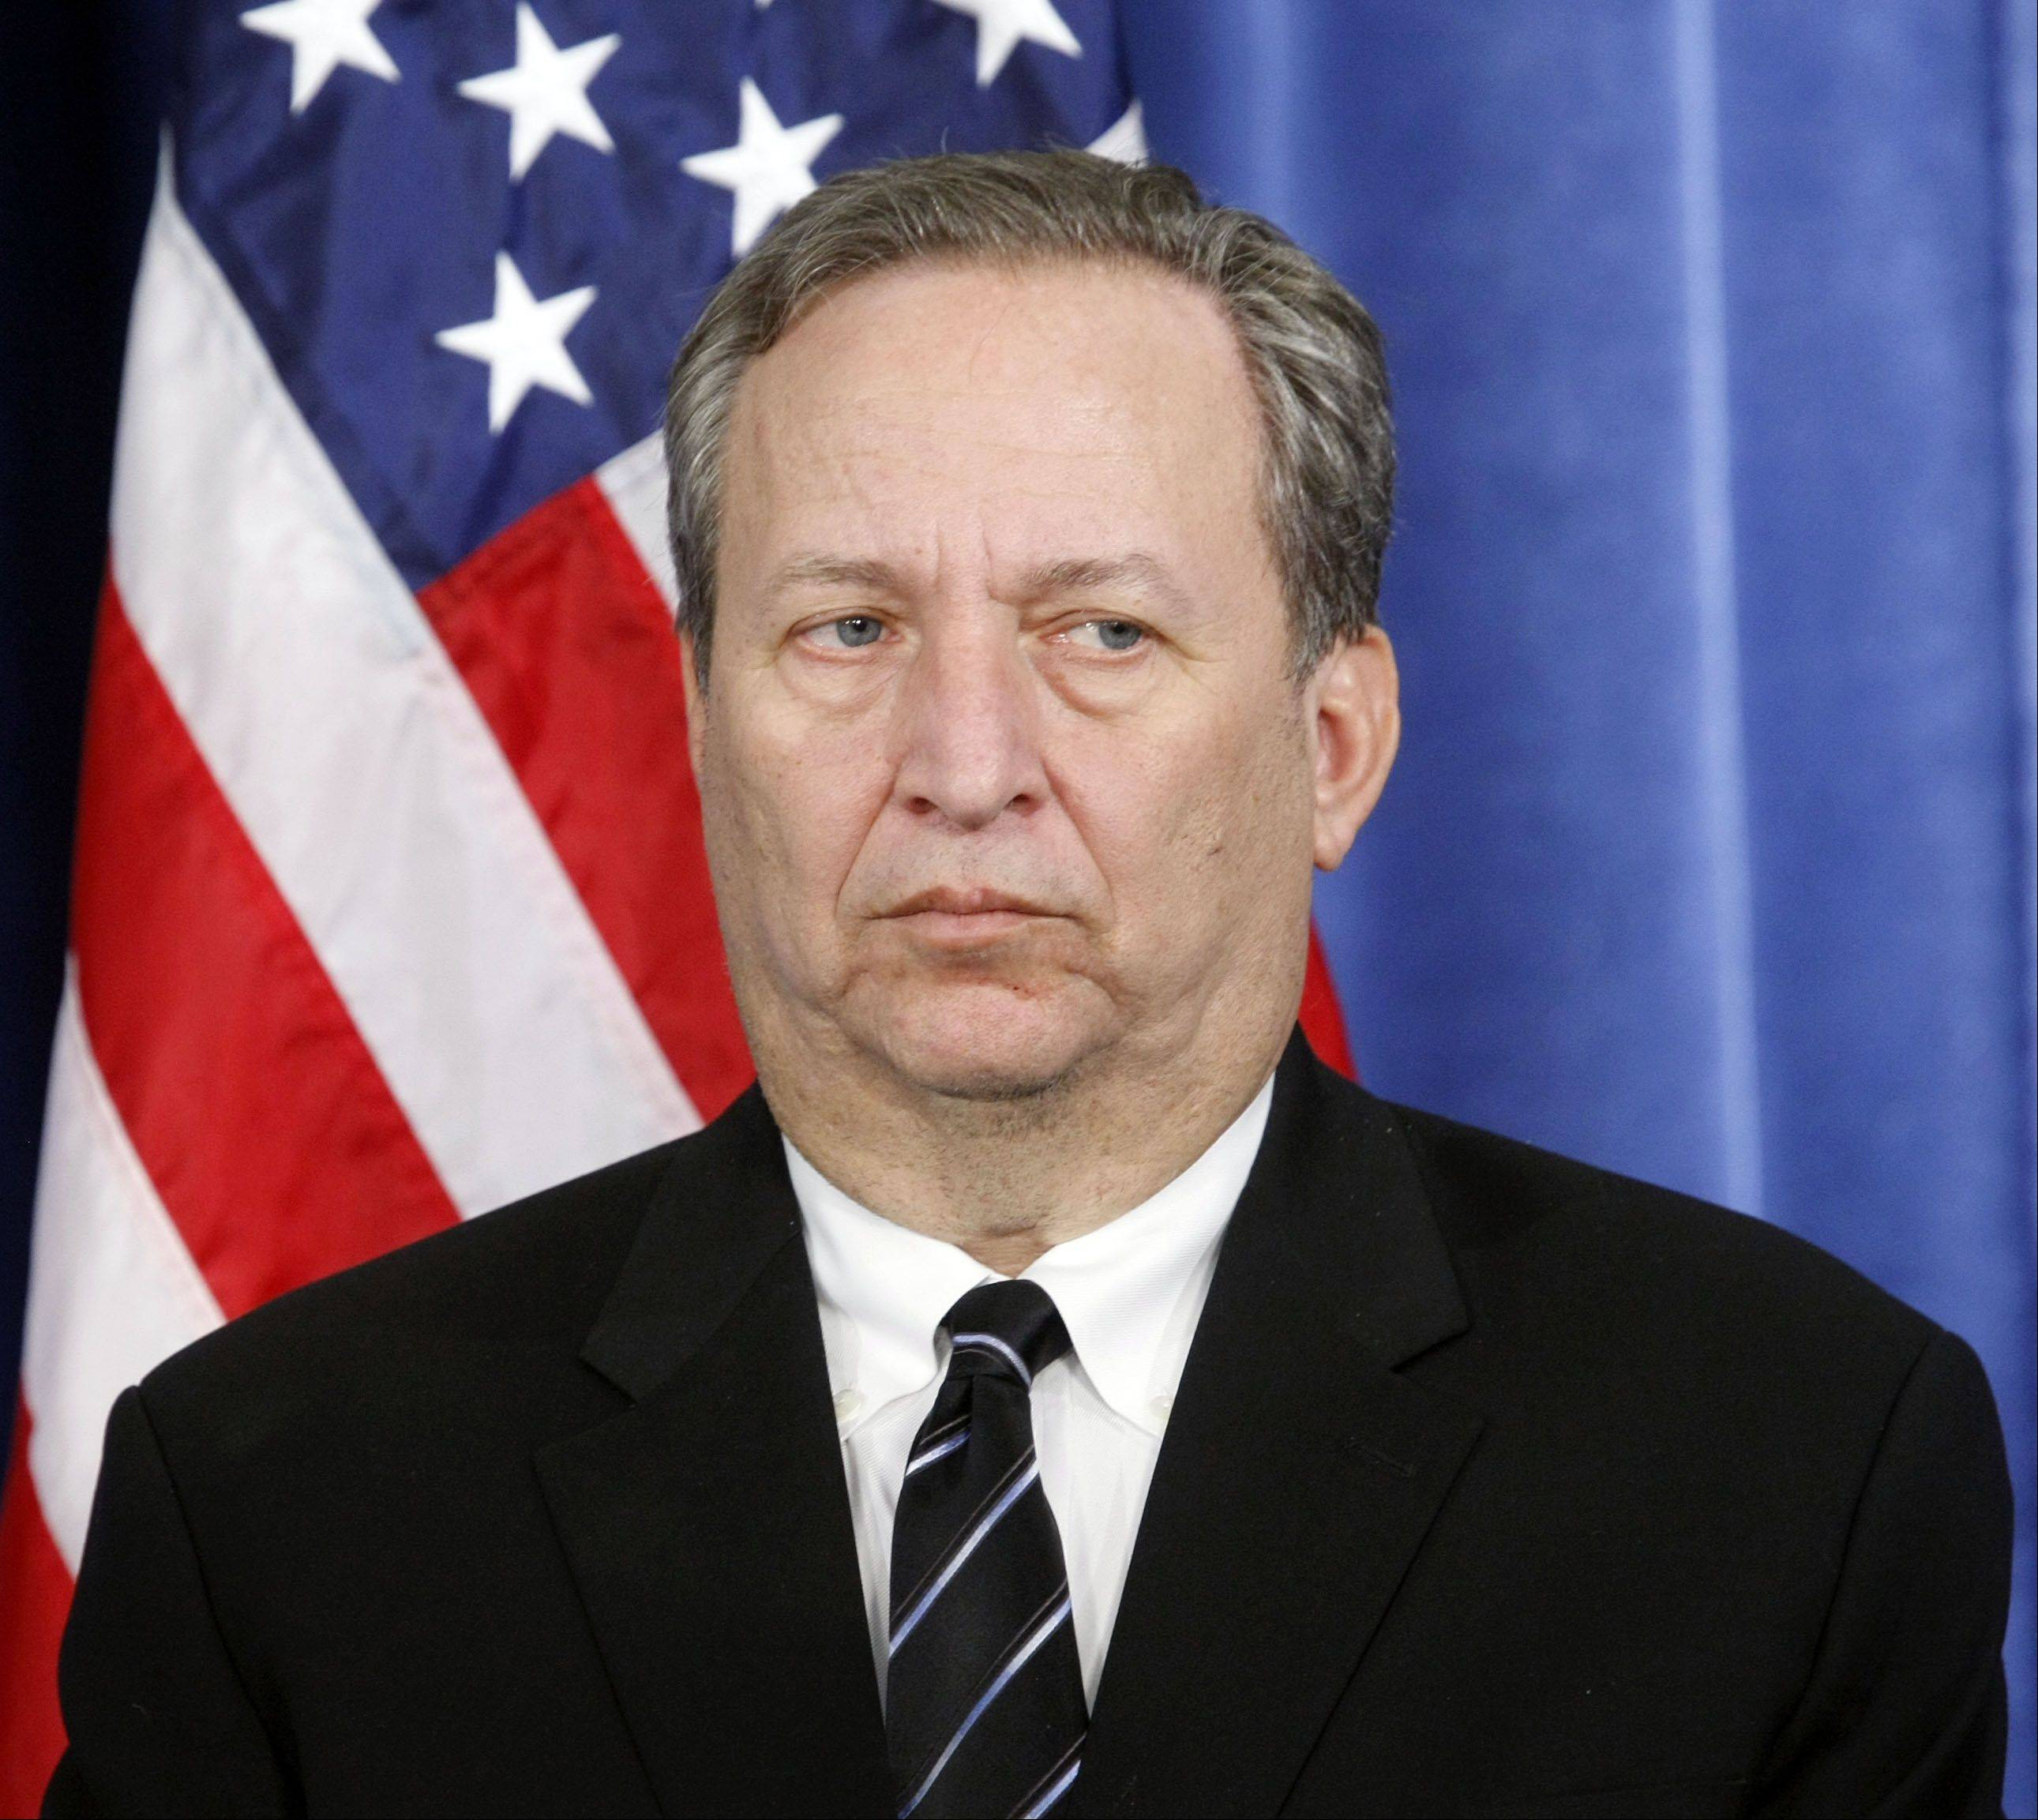 It was announced on Sunday that Lawrence Summers has withdrawn his name from consideration to succeed Ben Bernanke as chairman of the Federal Reserve.